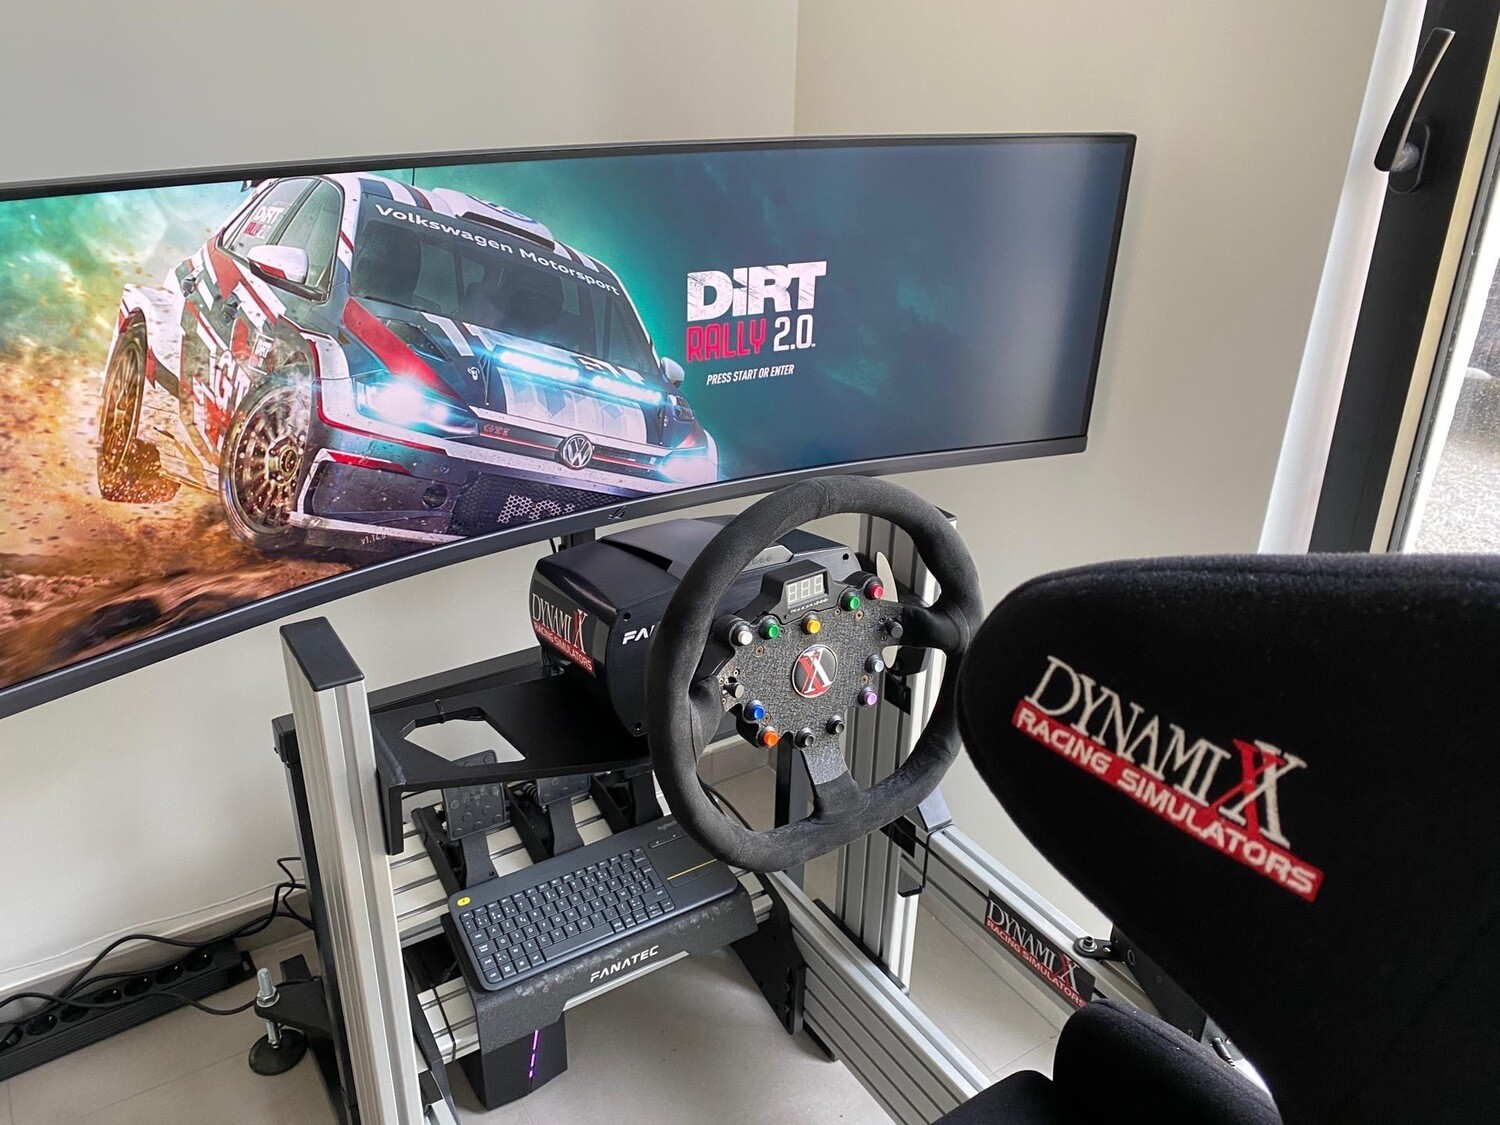 DXX 8020 SIMULATOR BRC RALLY PACKAGE